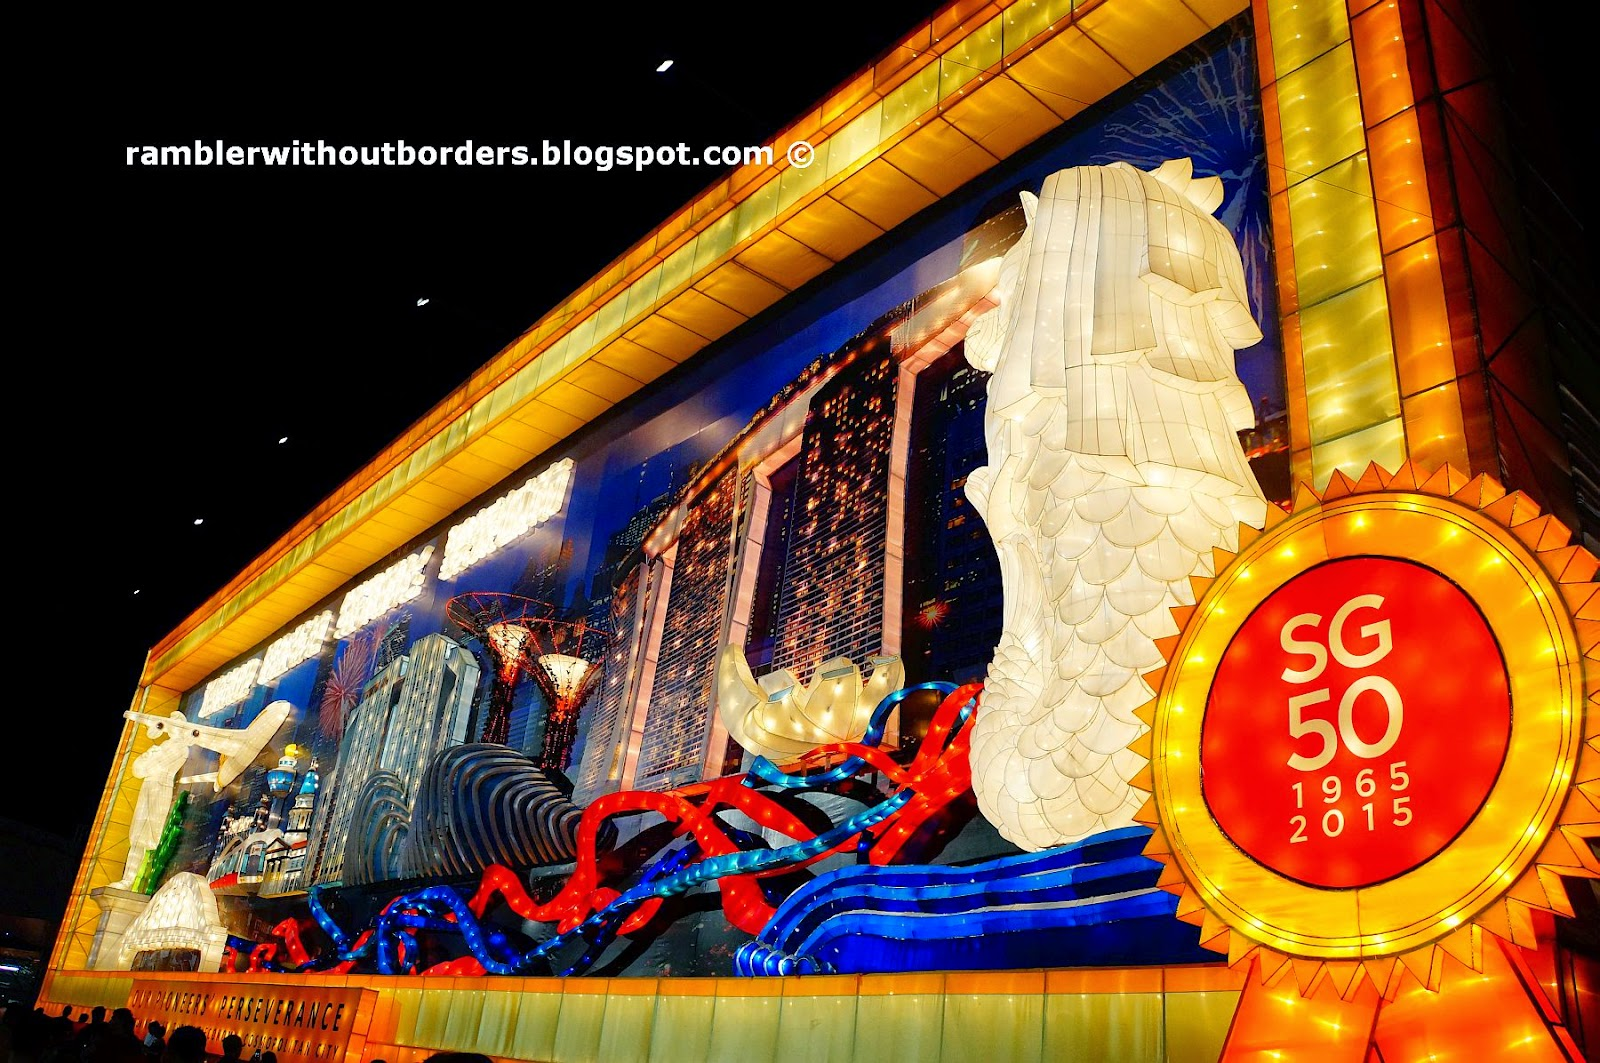 SG50 Giant Mural Wall, River Hongbao 2015, Singapore